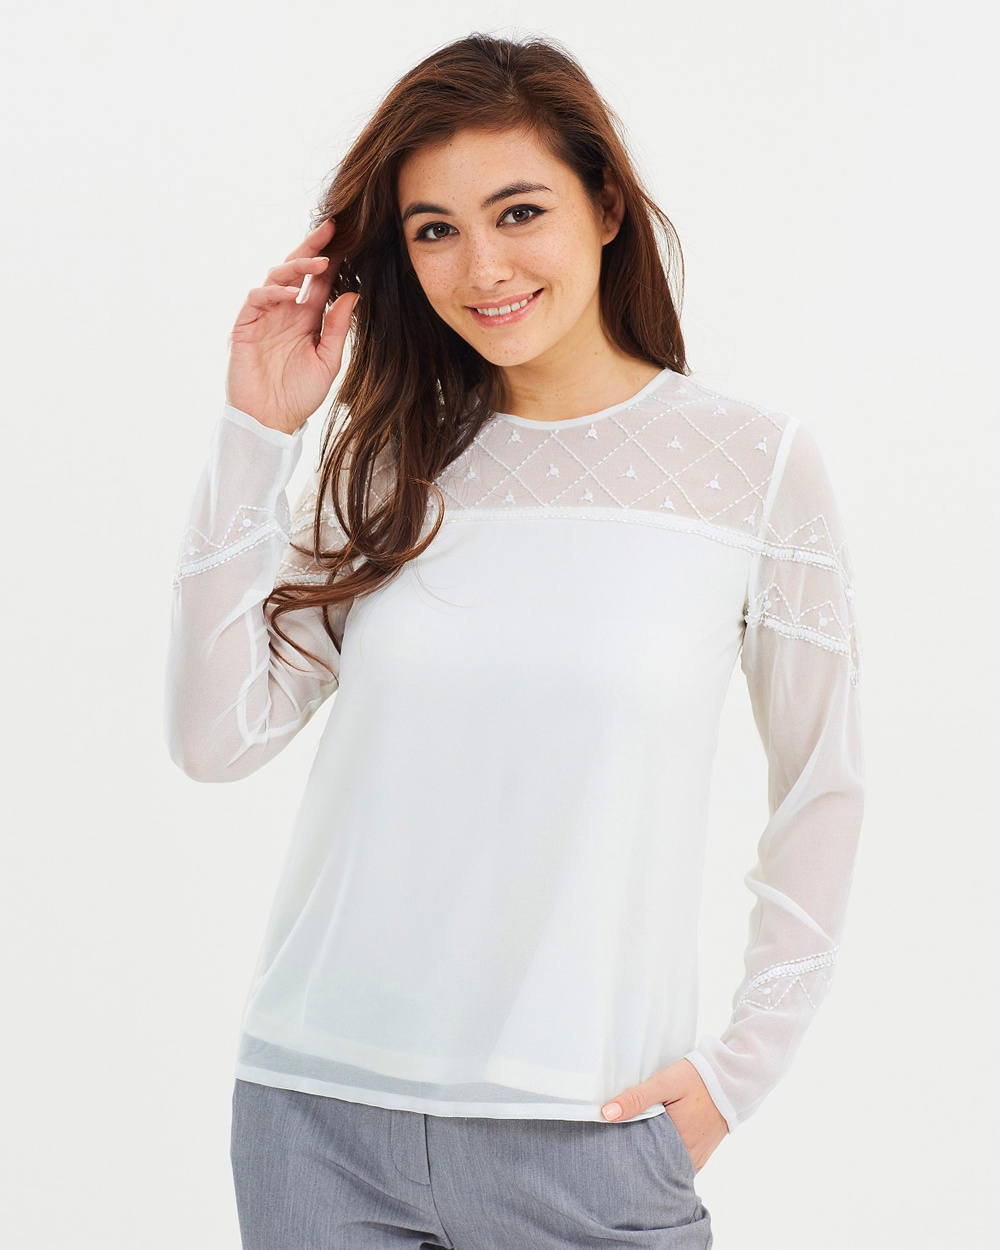 Dorothy Perkins Embellished Long Sleeve Top Tops Ivory Embellished Long Sleeve Top